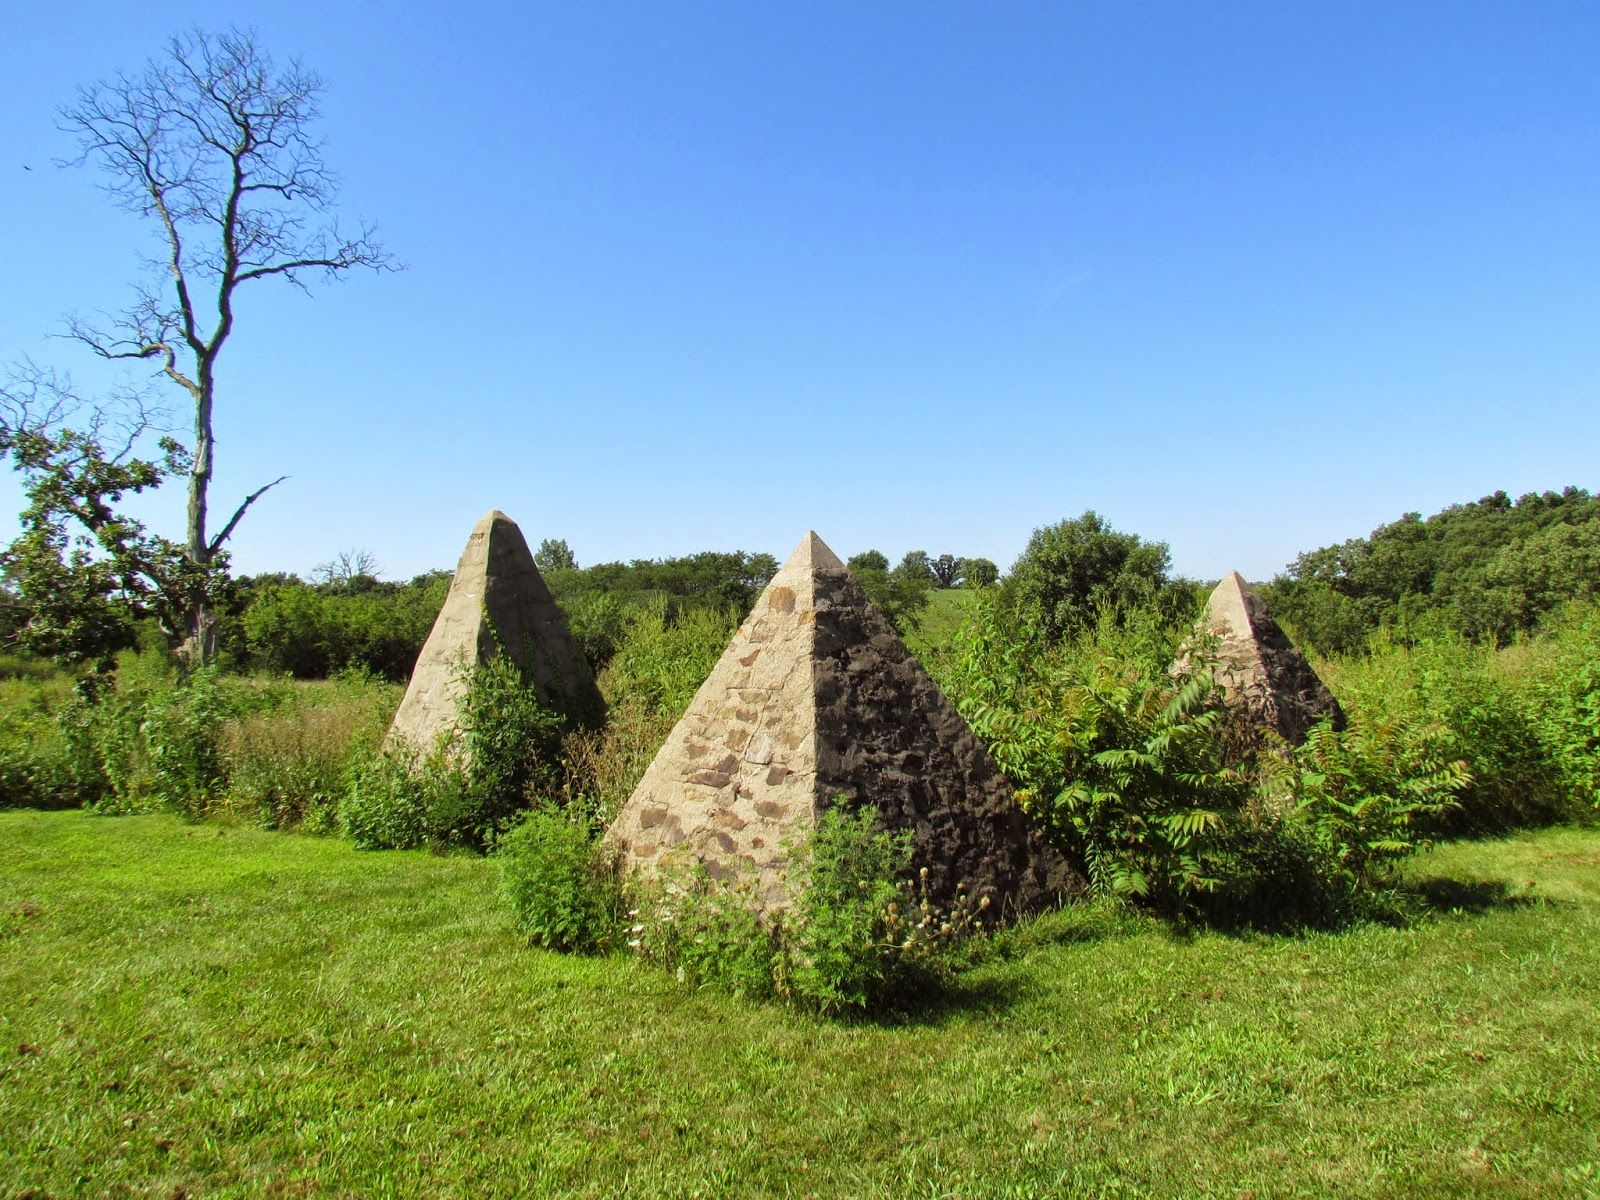 11 Mysterious, Unusual Spots In Iowa You Never Knew Existed